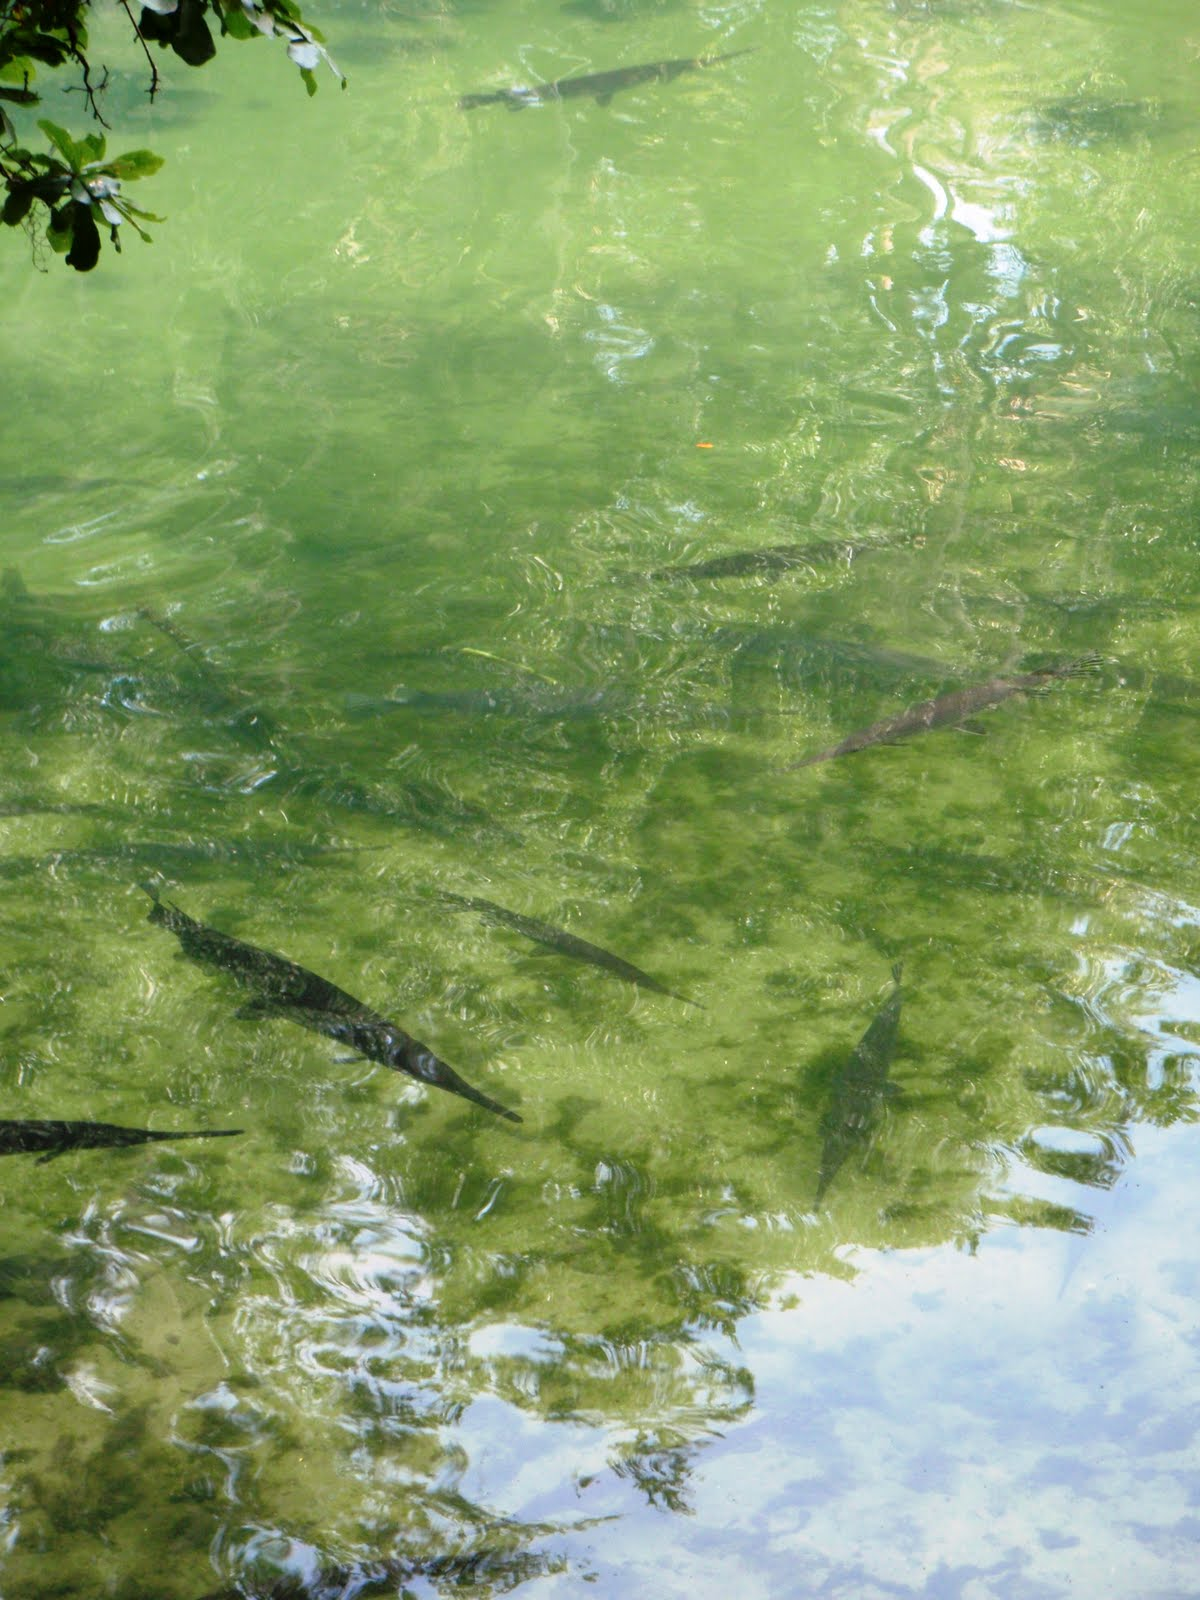 The flying mullet adventures at blue spring state park for Florida state fish